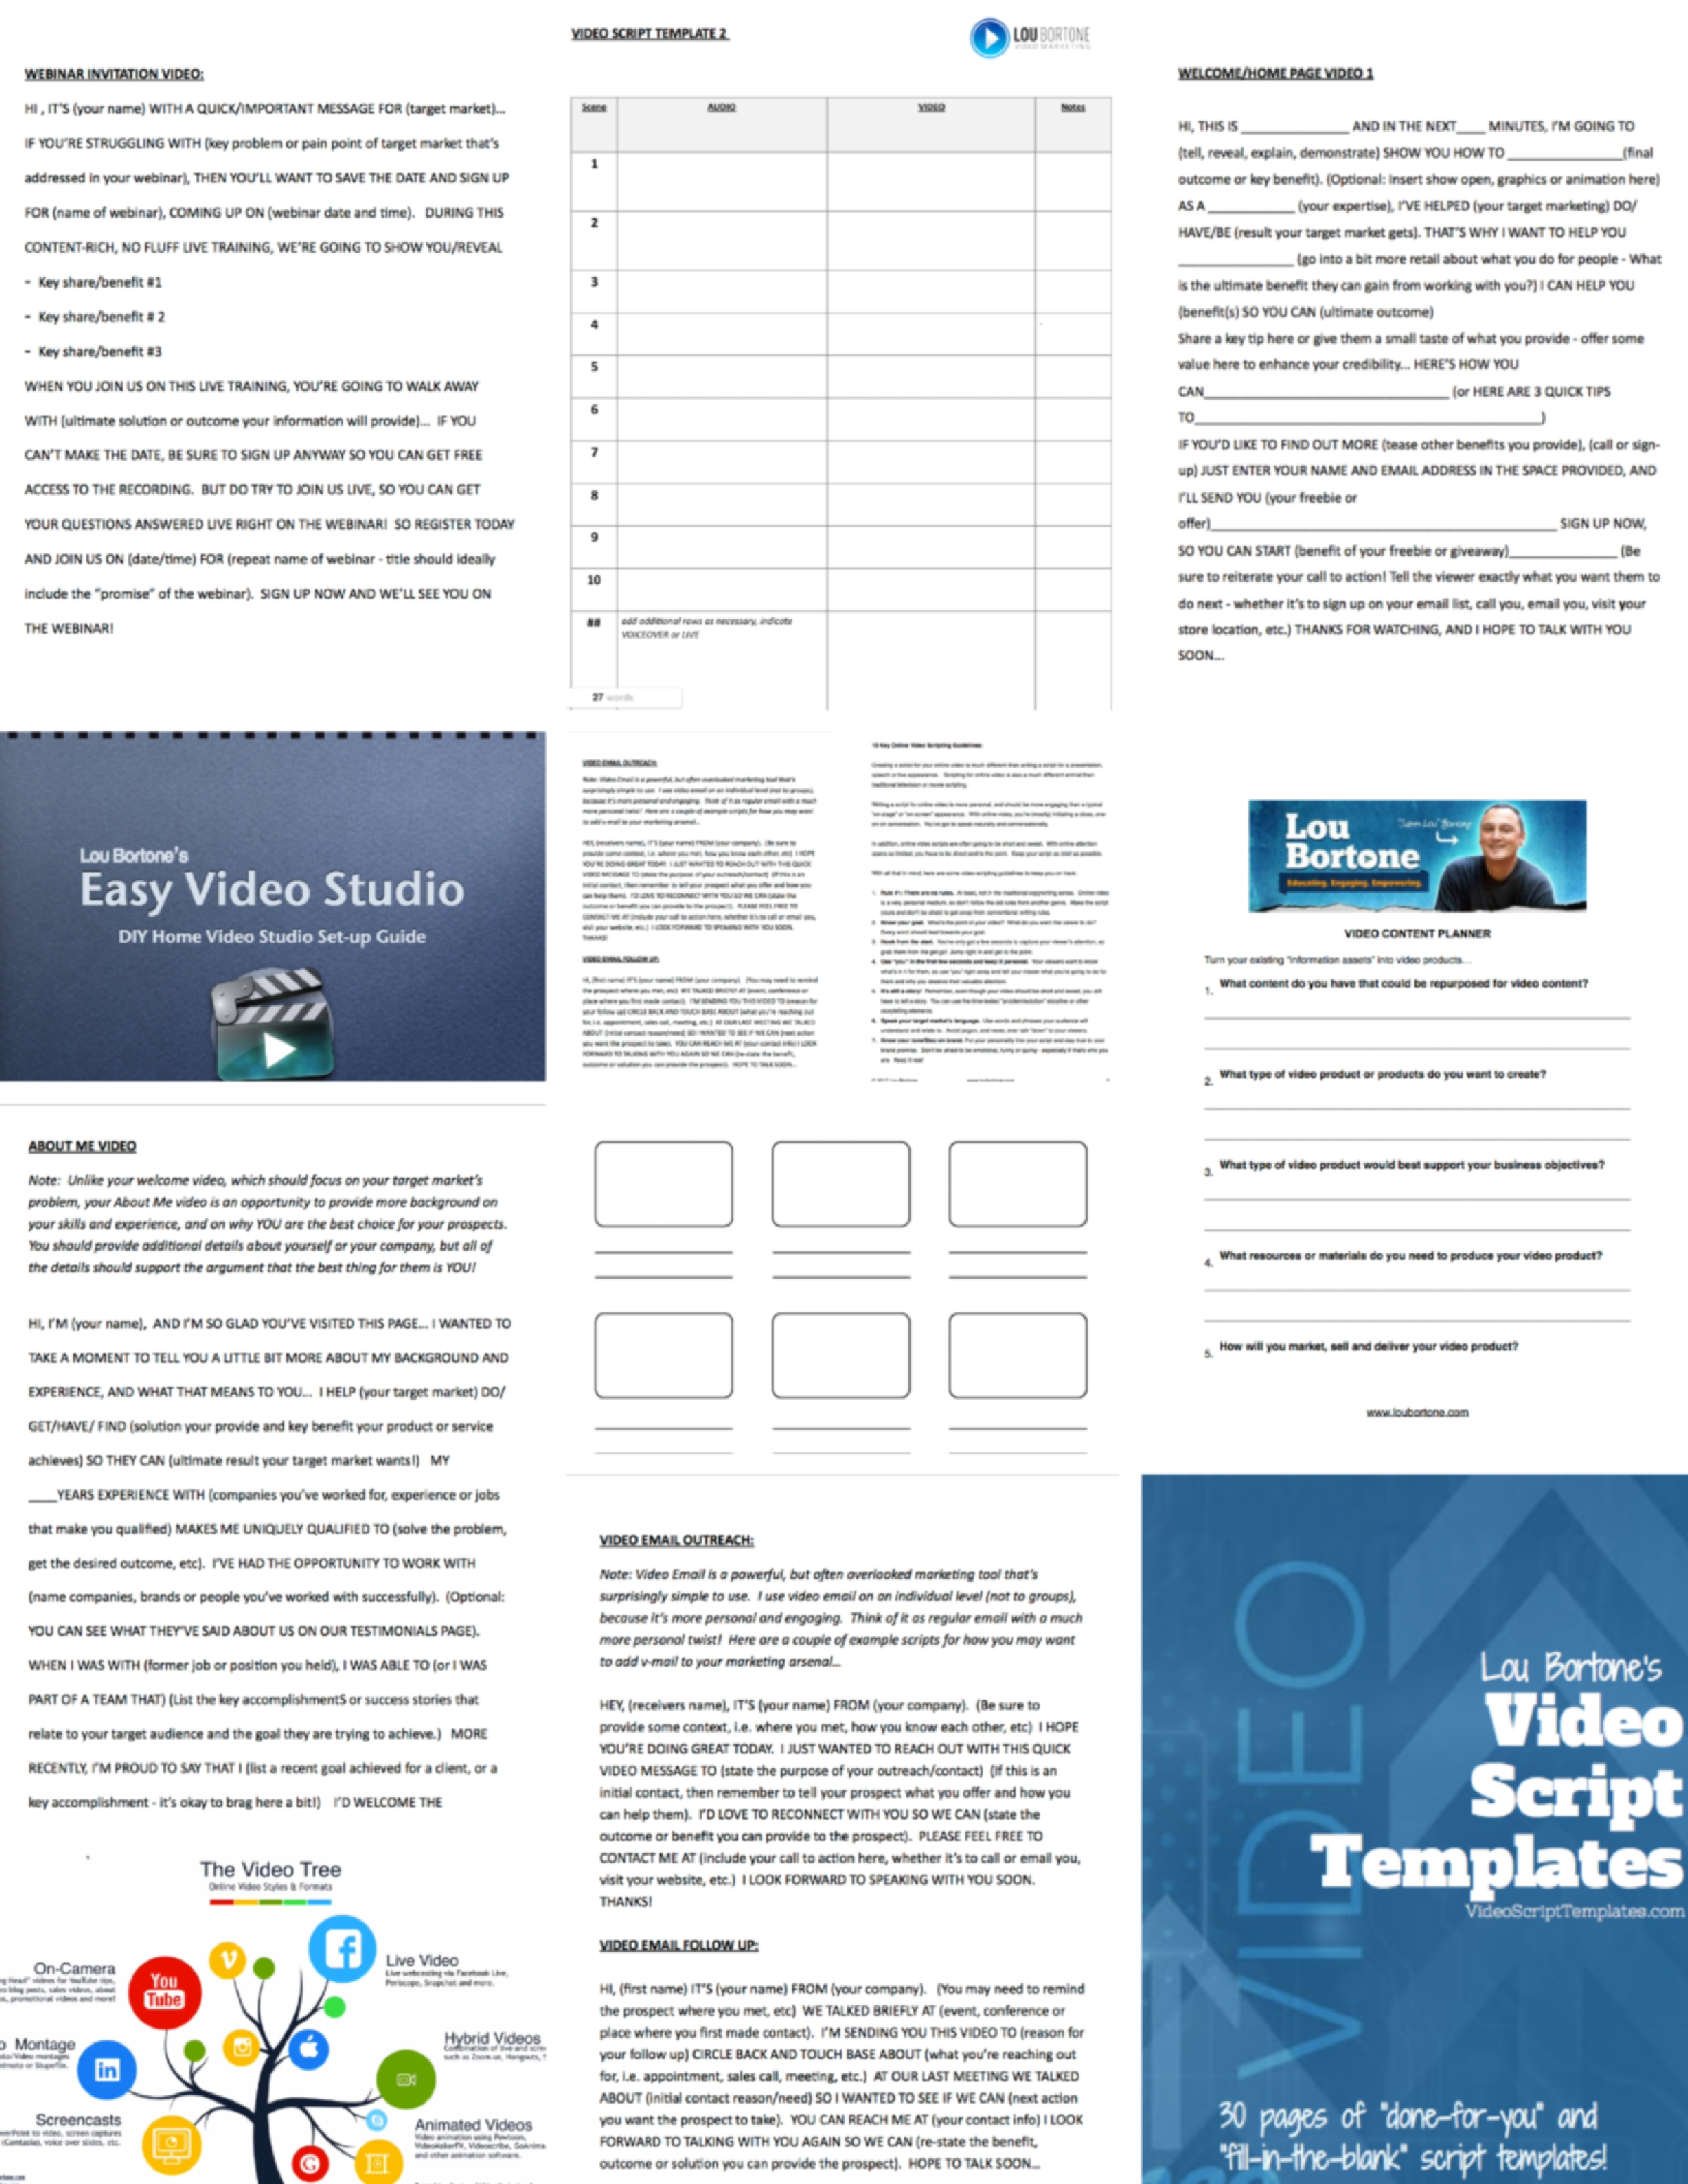 Examples Of Home Page Welcome Video Scripts S Videos Explainer Live And Interview You Channel Trailer